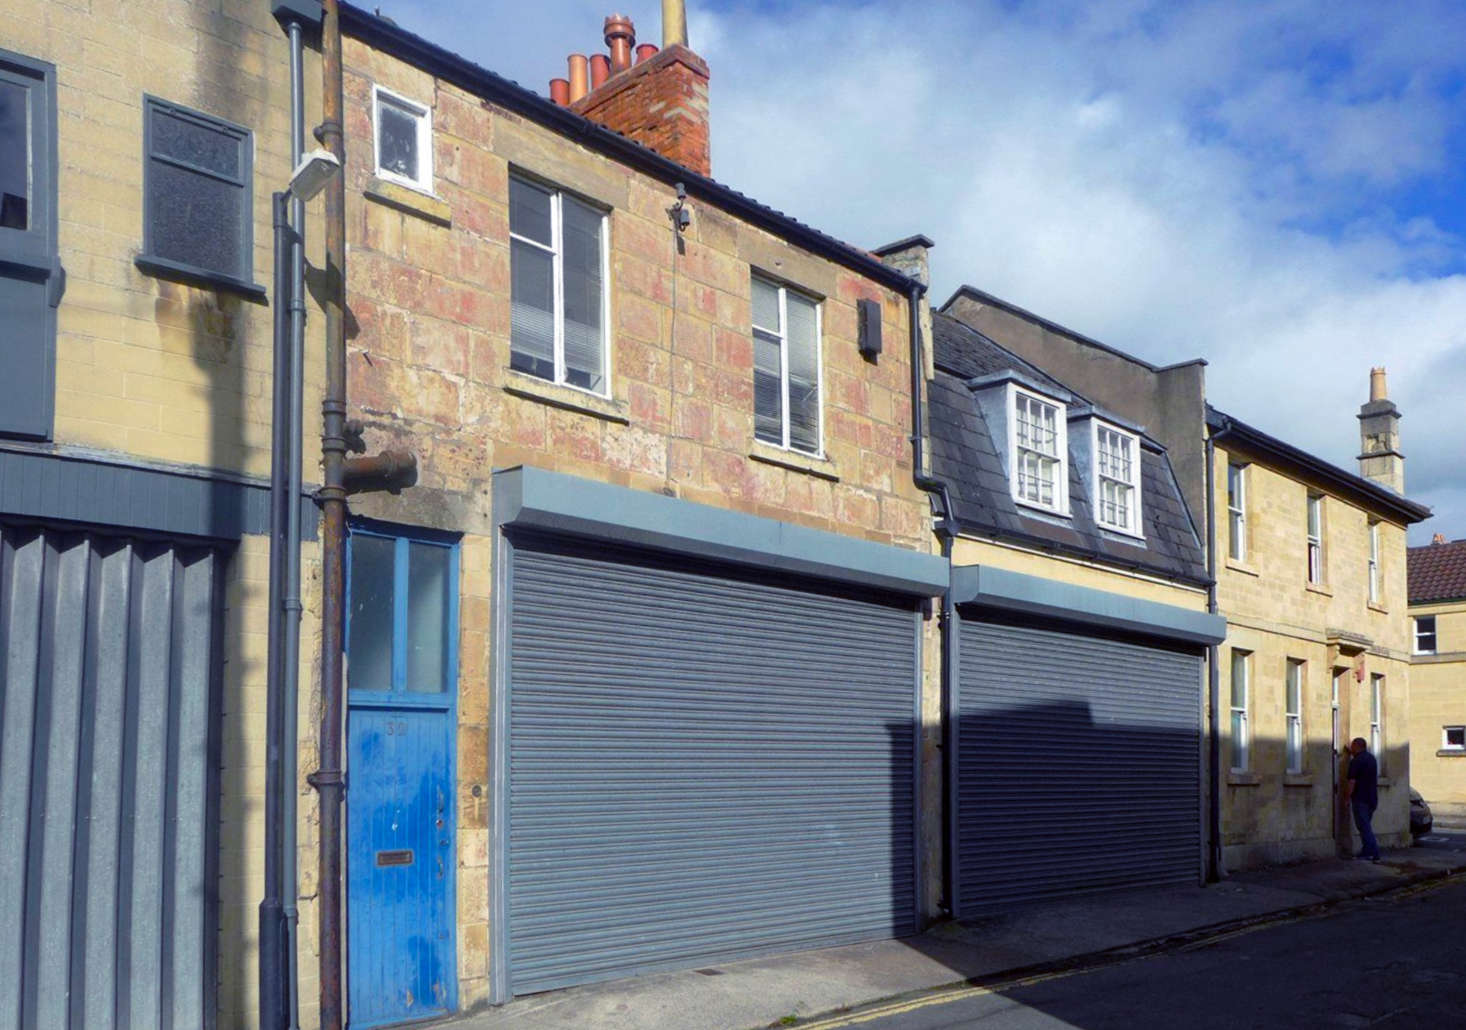 Located on Circus Place, the stone structure with the blue door had, like other buildings on the block, been converted into a garage in the 80s.